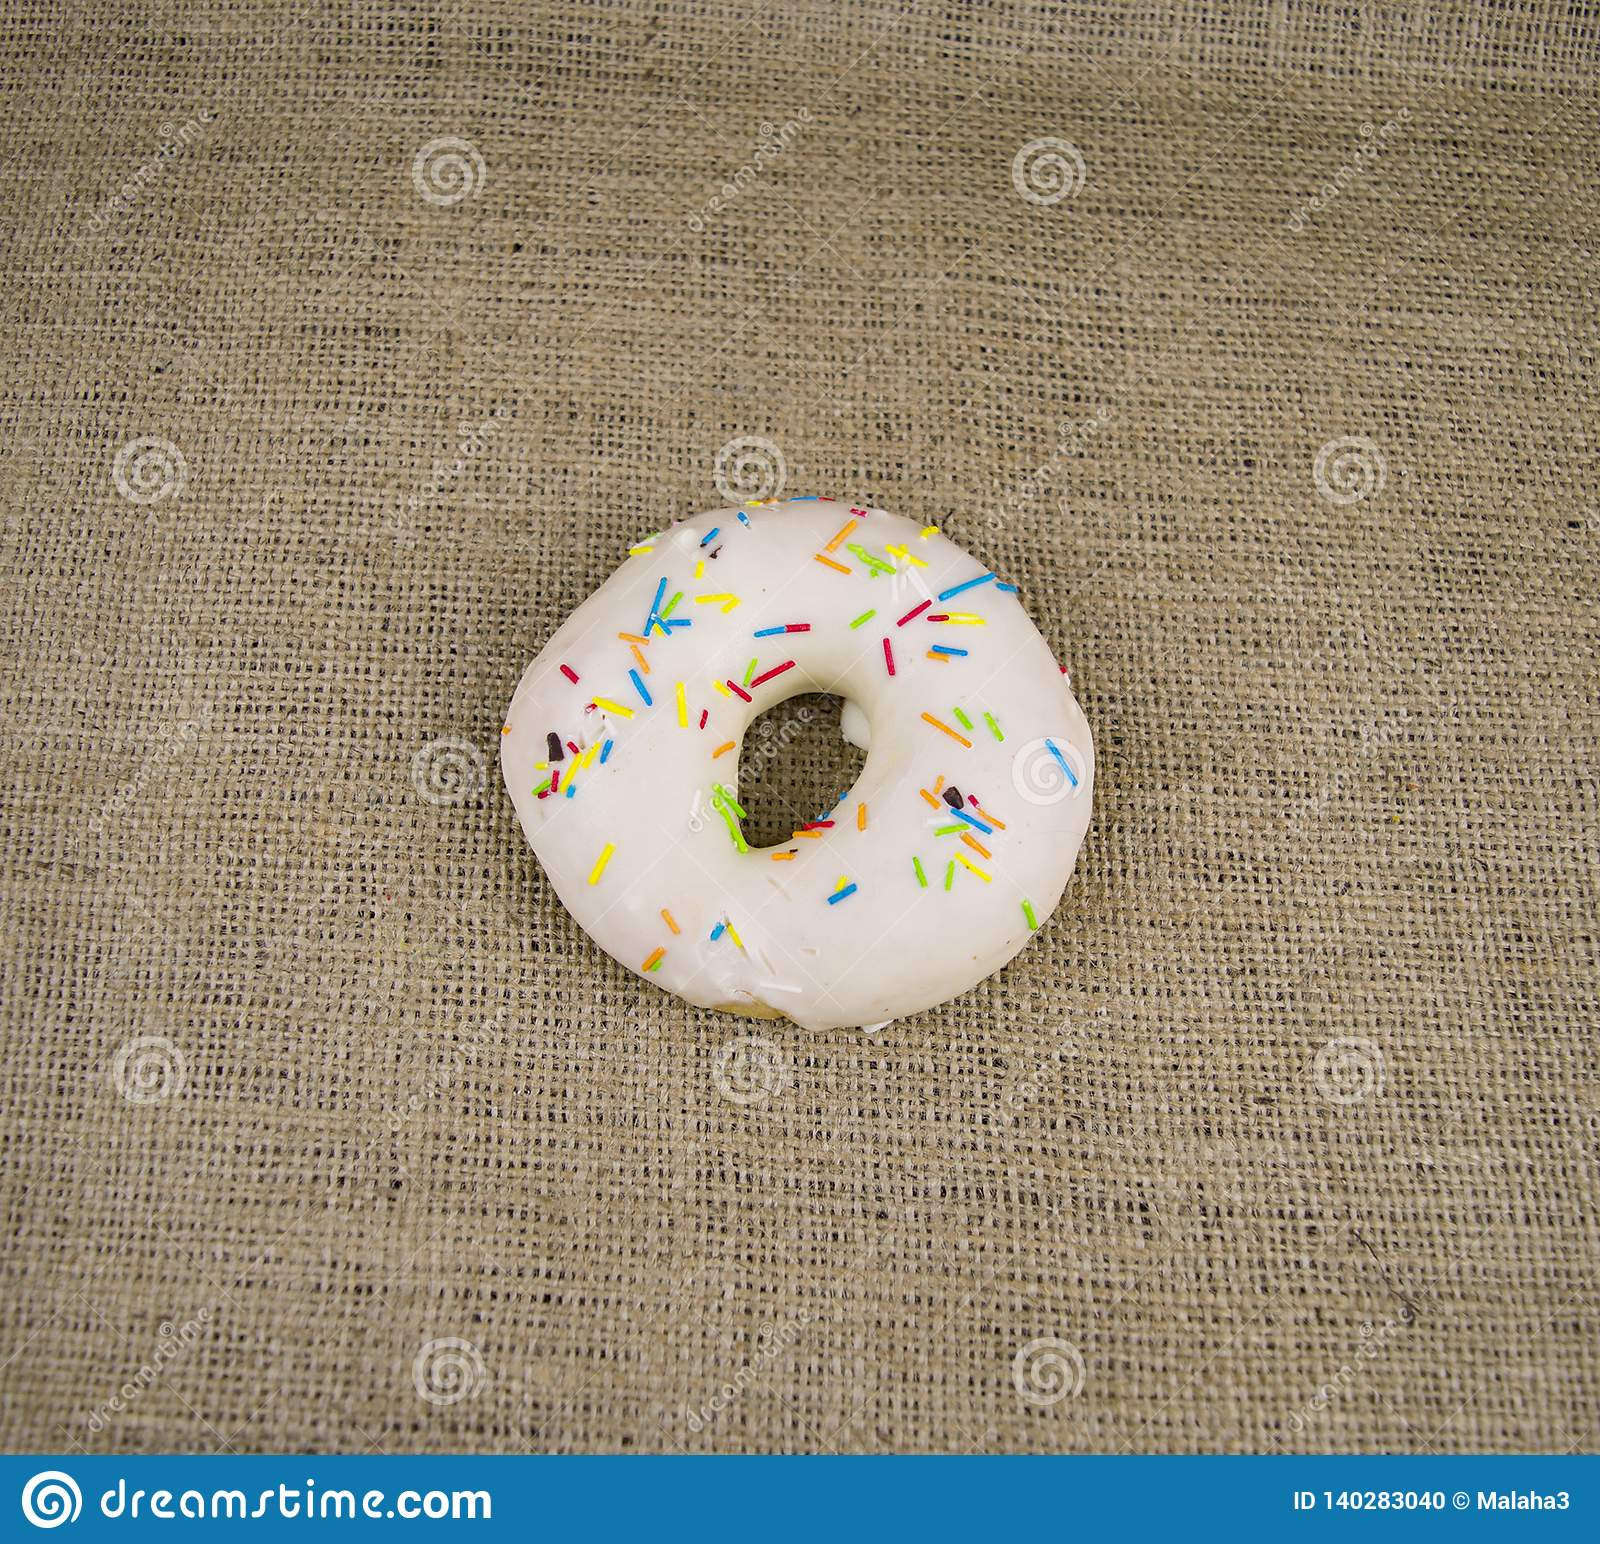 Bagel sprinkled with colored glaze, there is free space to fill